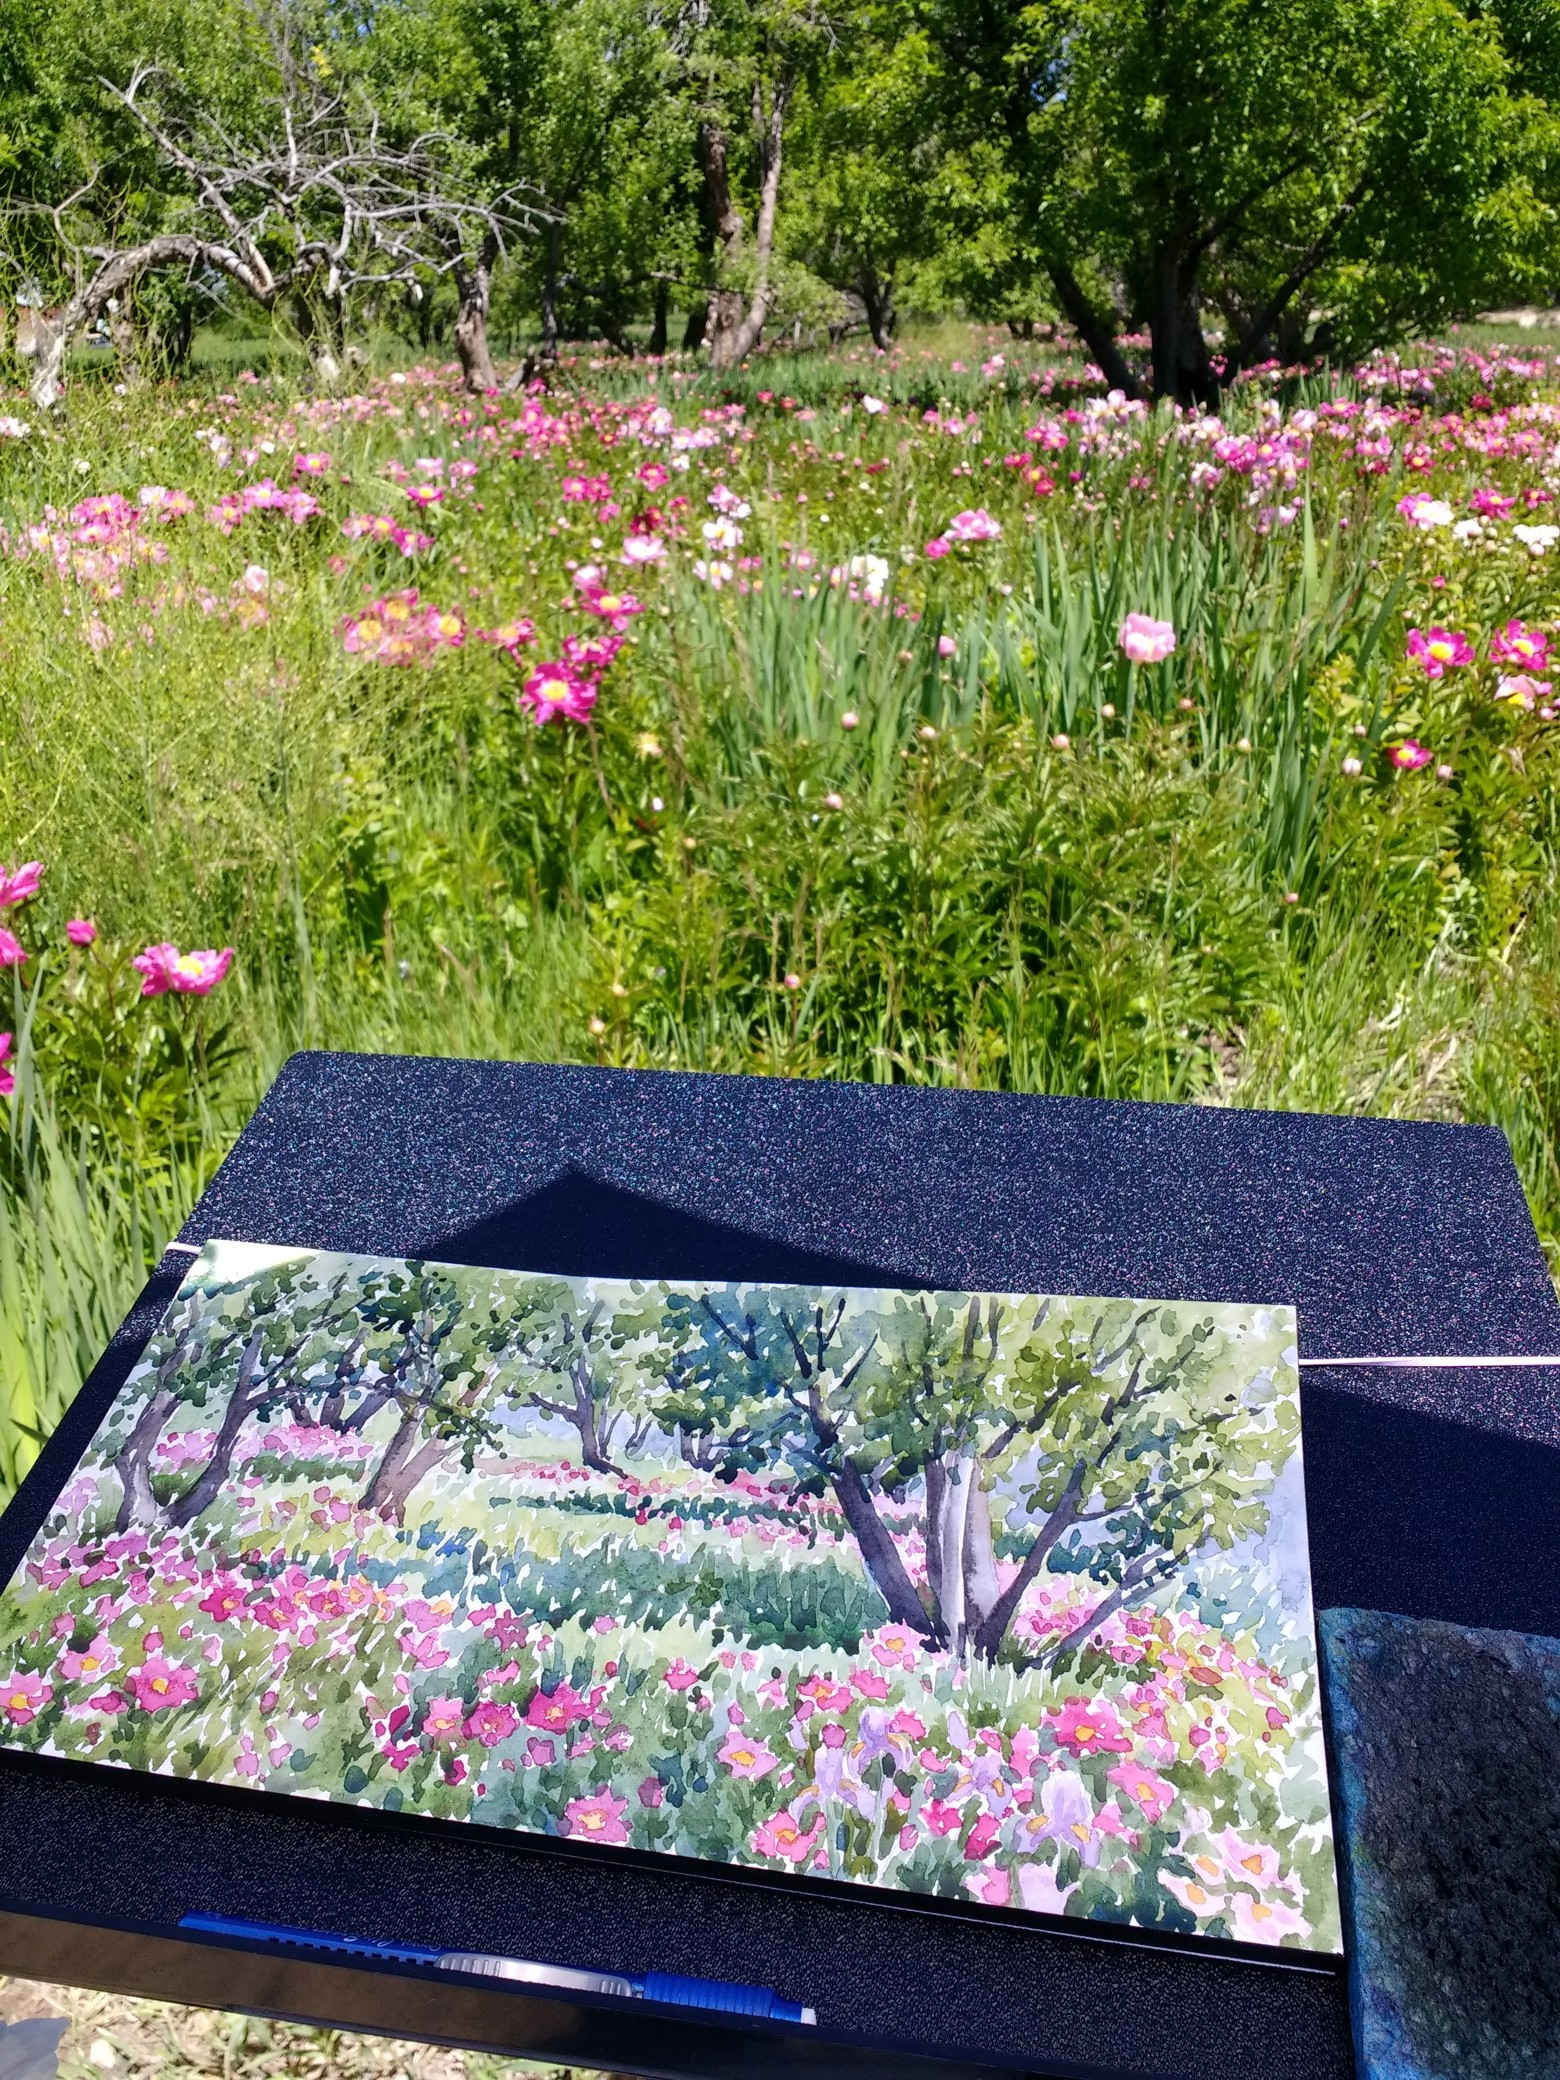 plein-air-painting-Lorraine-Watry-La-Resolana-Peony-Farm-Pueblo-Colorado-2.jpg